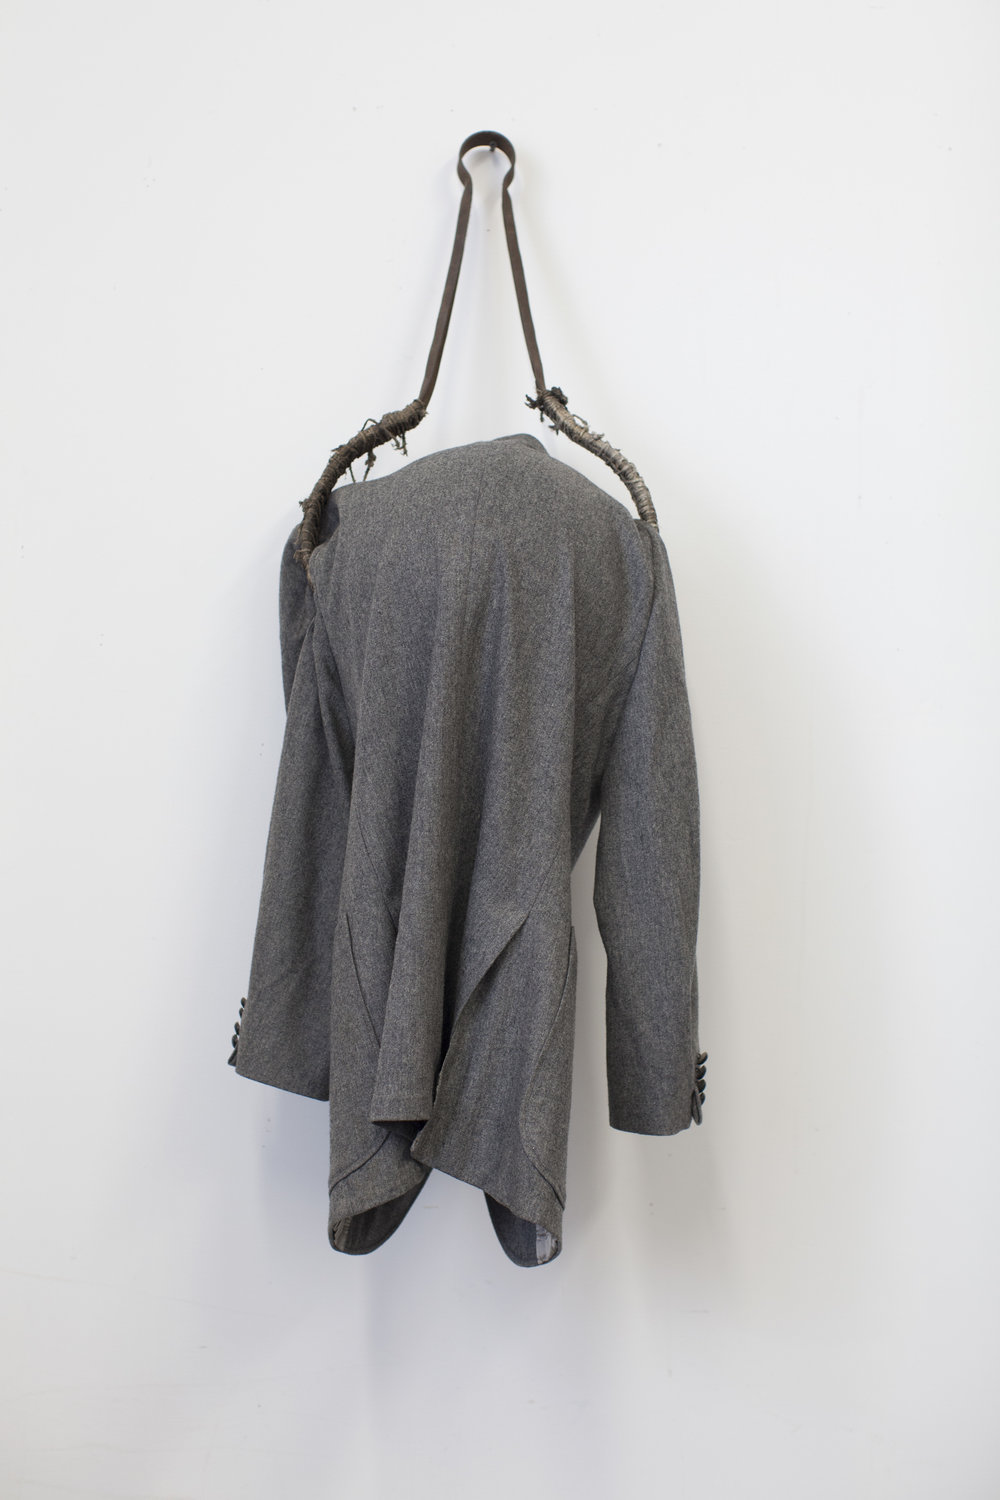 You're Late, Found suit coat, metal, rope, plastic globe, 2018, 46 x 17 x 14 inches.